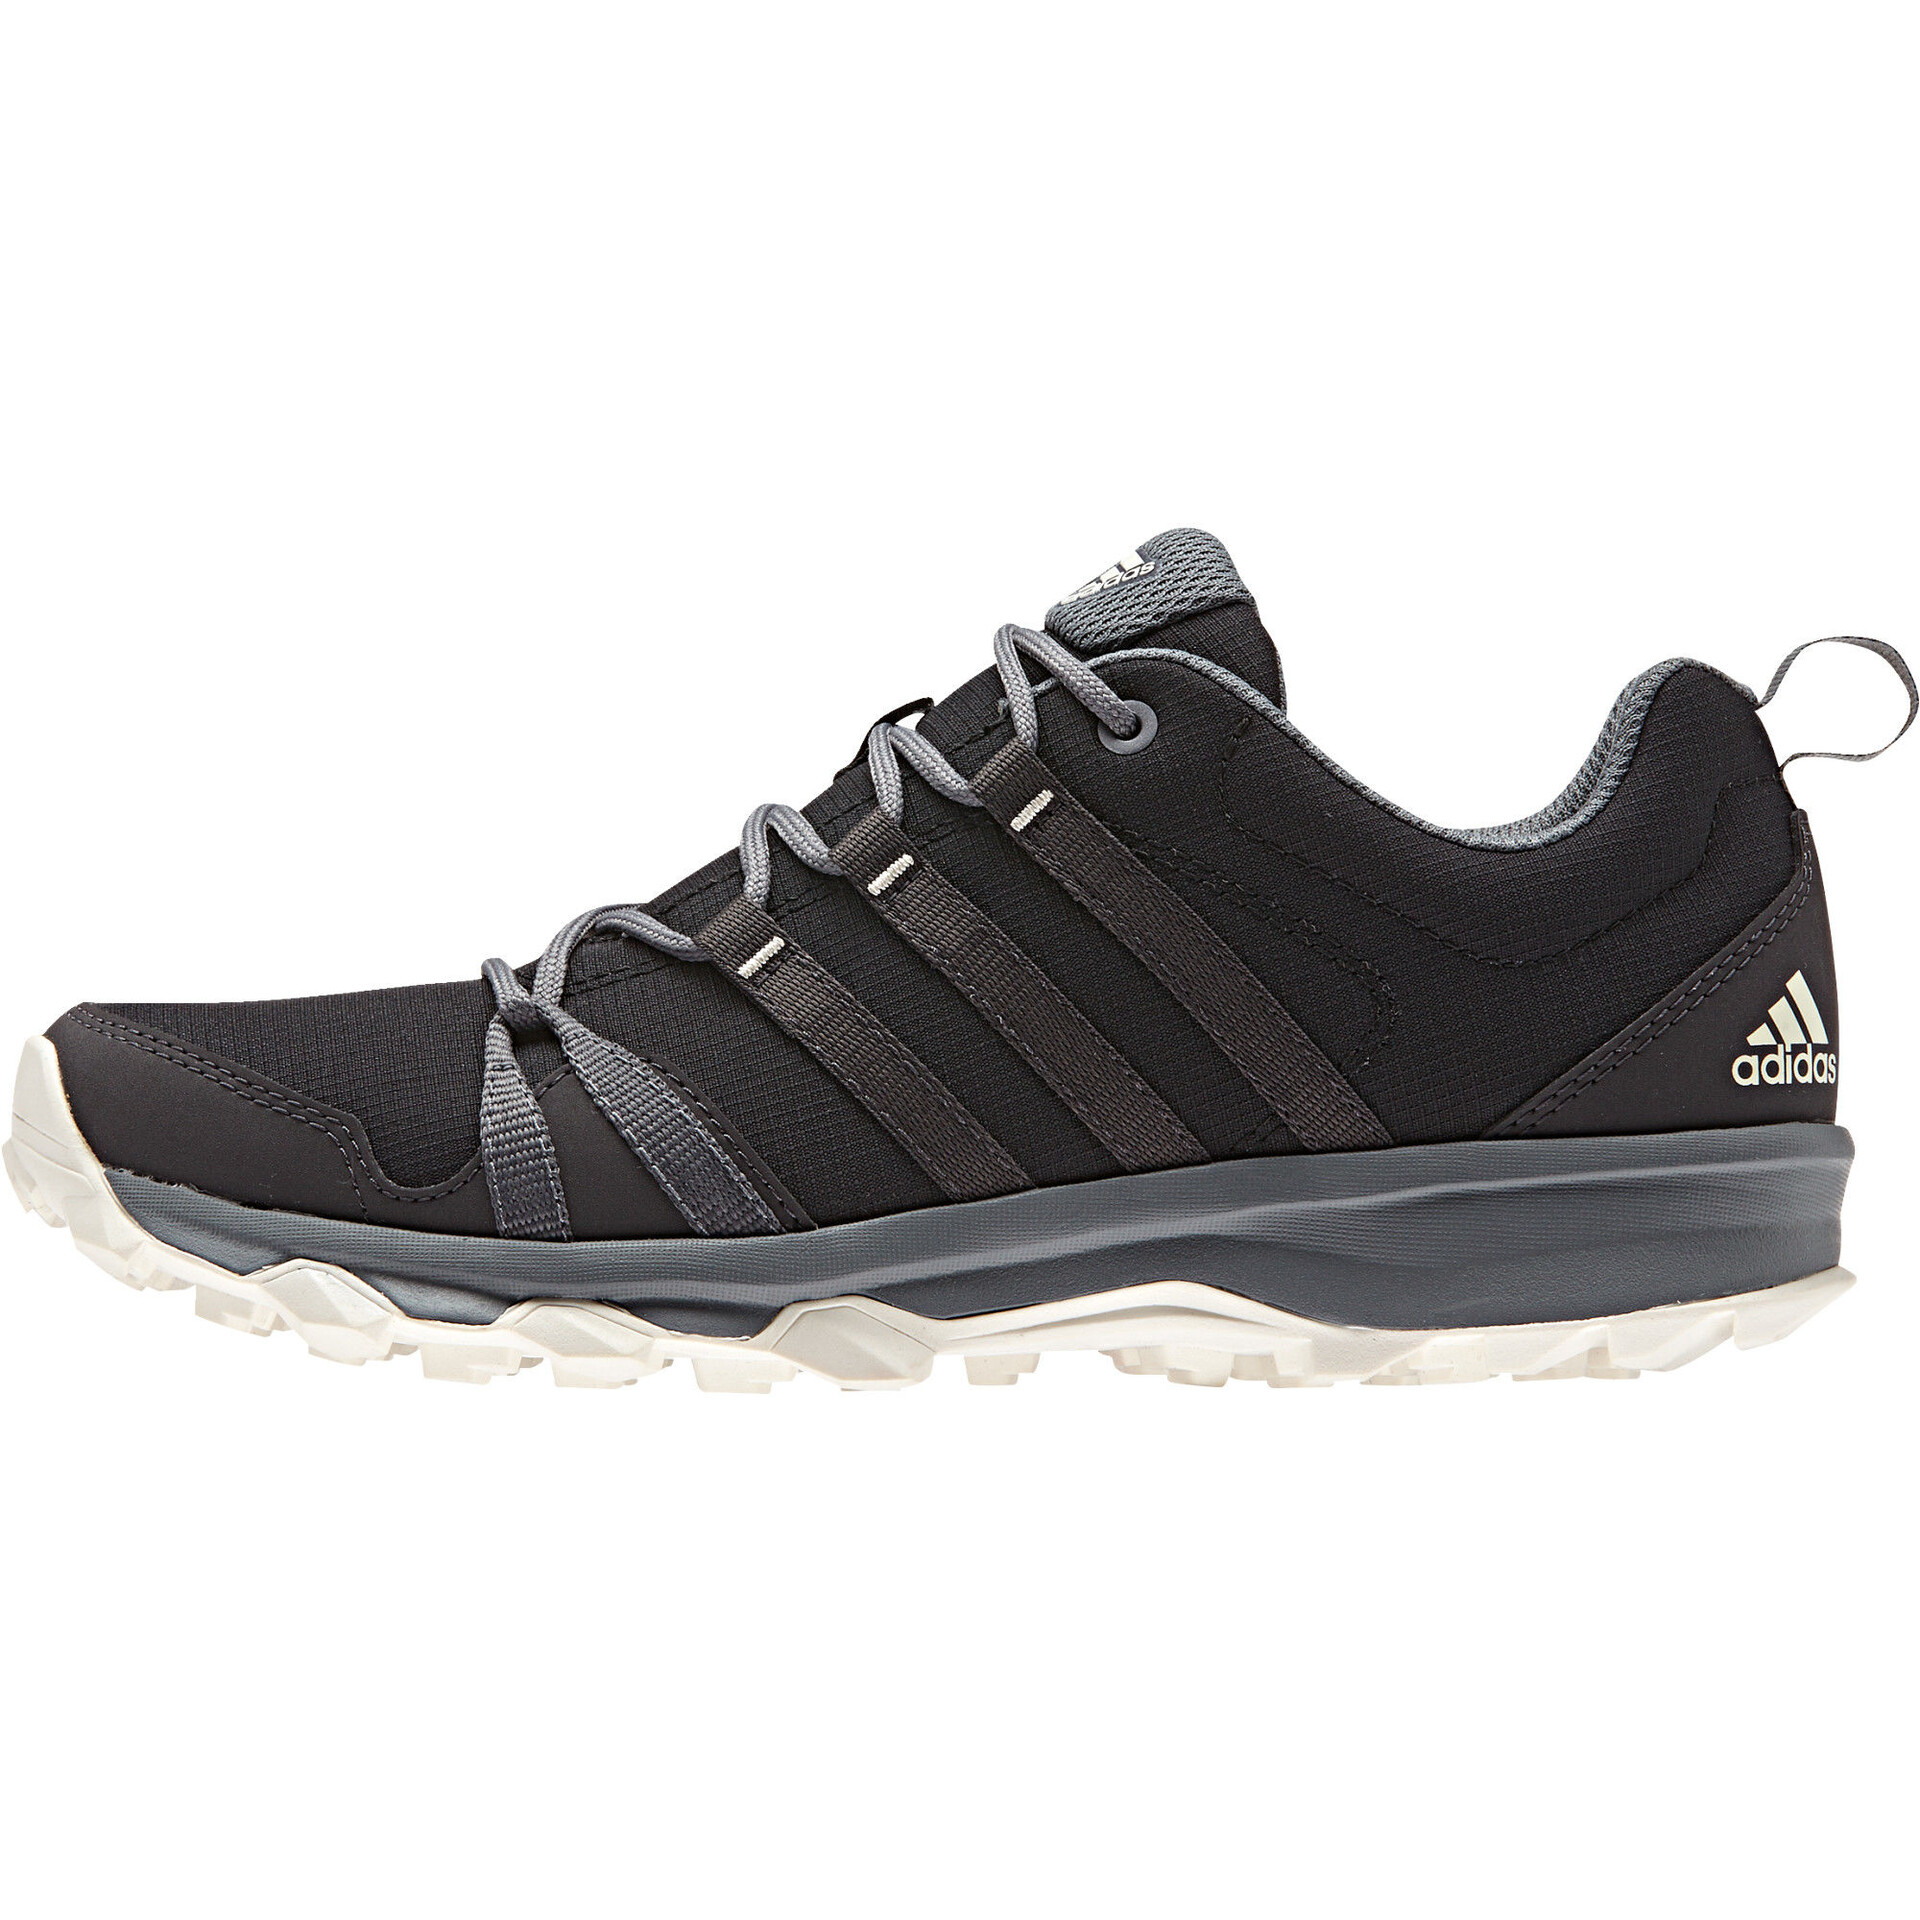 adidas cloudfoam ultimate dames